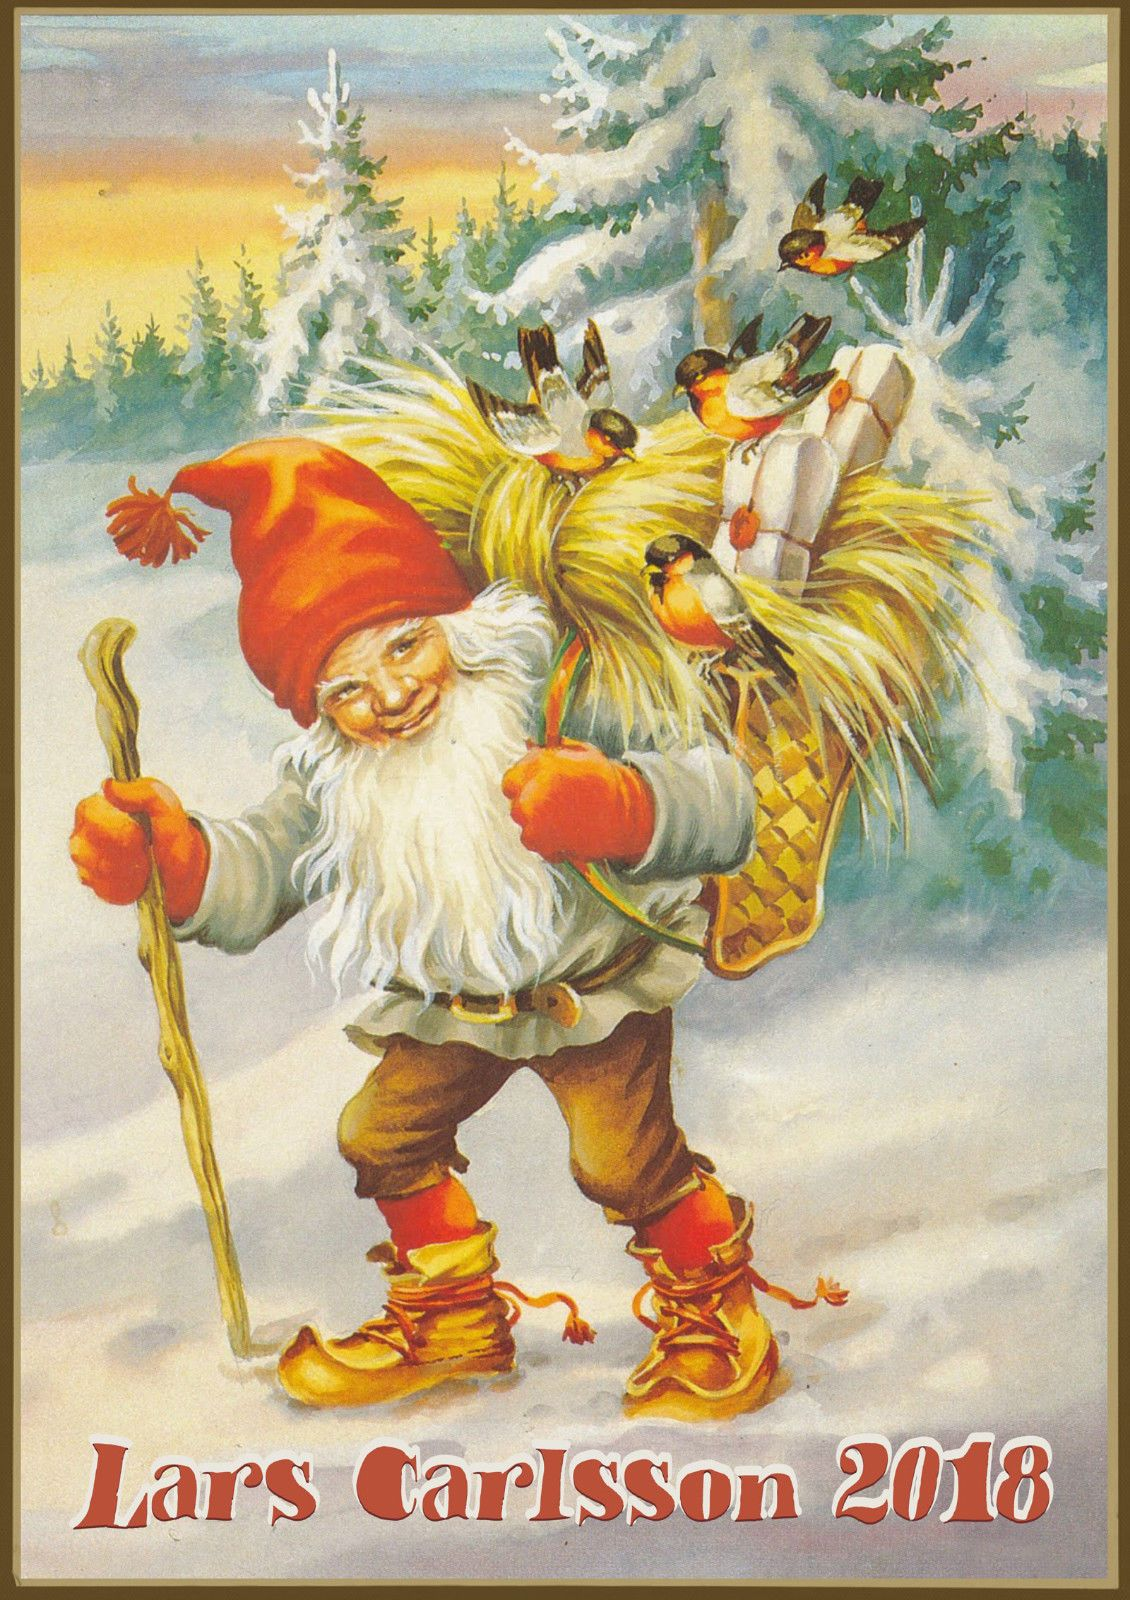 2021 Wall Calendar 12 Pages A4 Winter Gnomes Dwarf Lars Carlsson Vintage M710 Christmas Art Gnomes Scandinavian Christmas